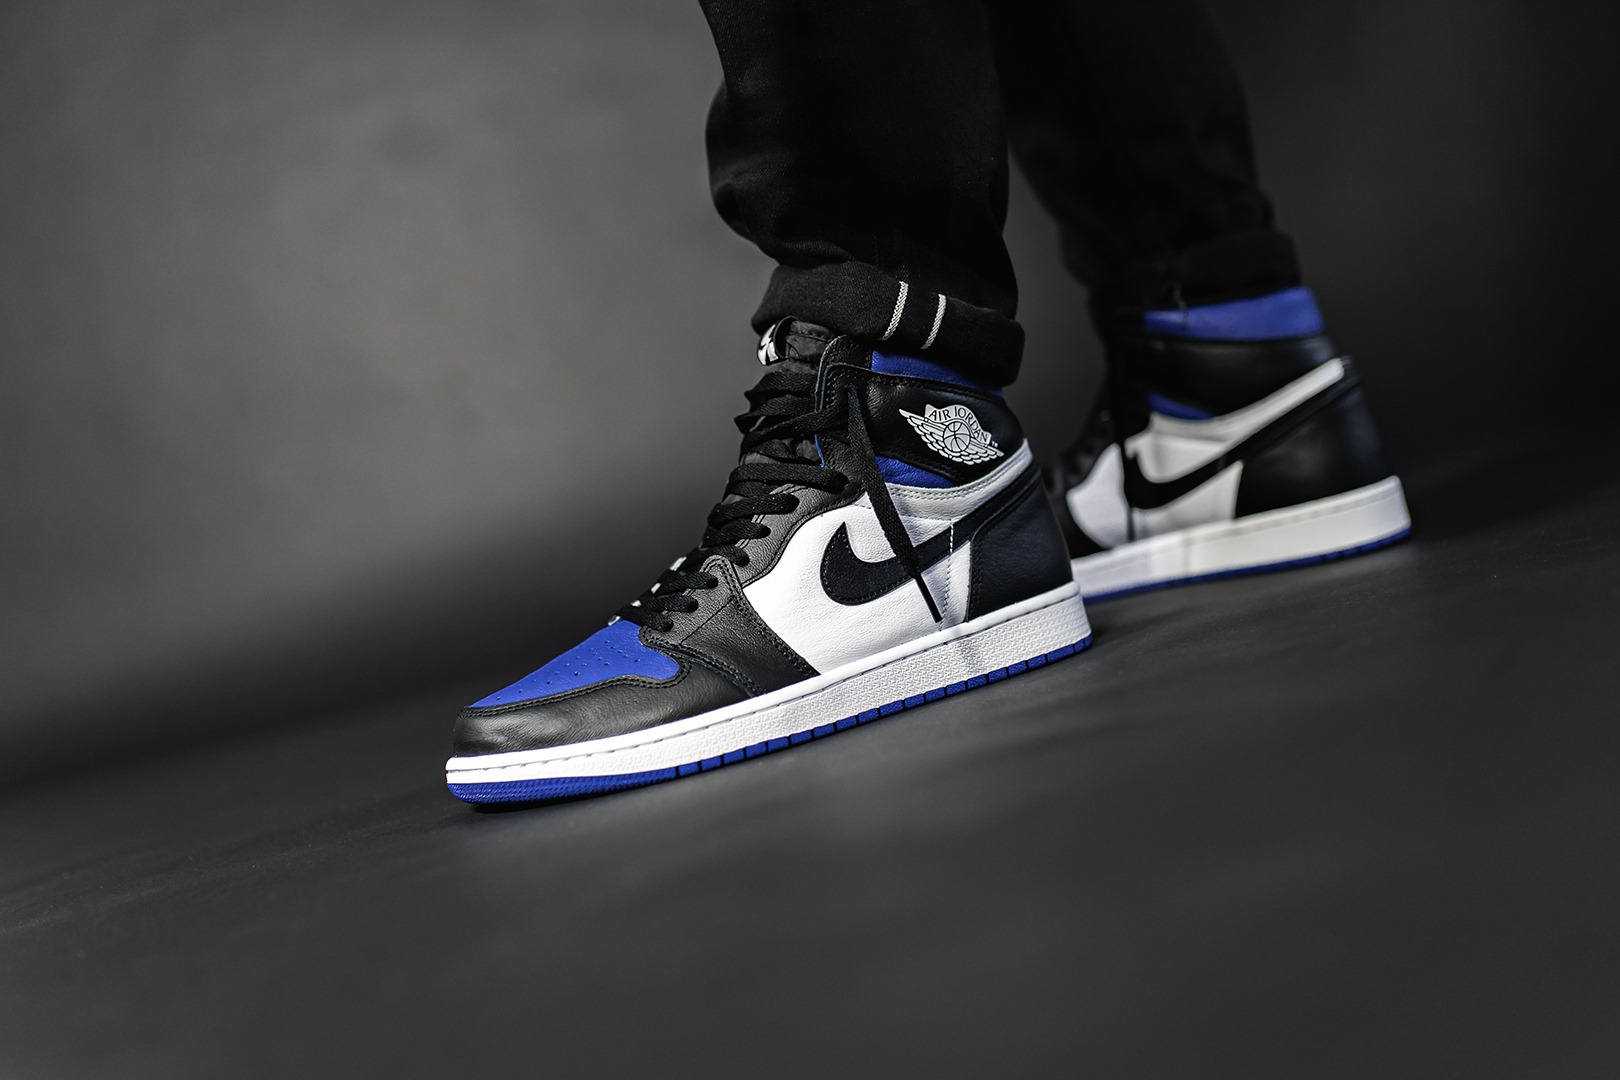 5月16日 発売予定 AIR JORDAN 1 RETRO HIGH OG ROYAL TOE (555088-041)